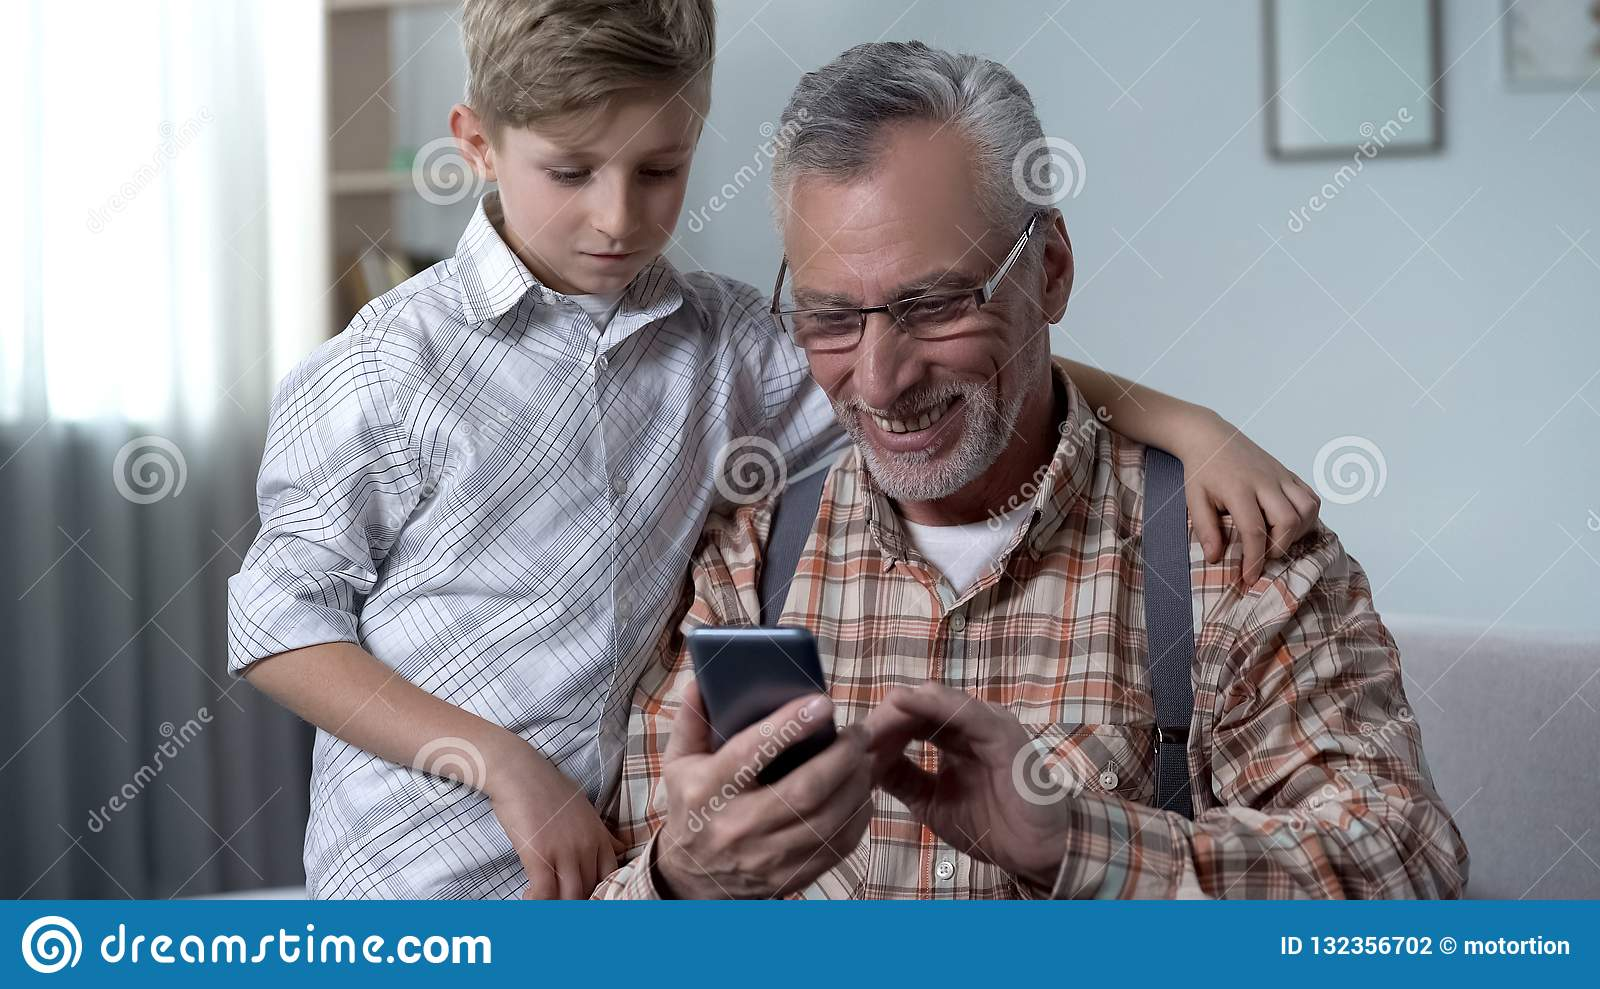 Grandson explaining grandfather how to use smartphone, easy app for elderly